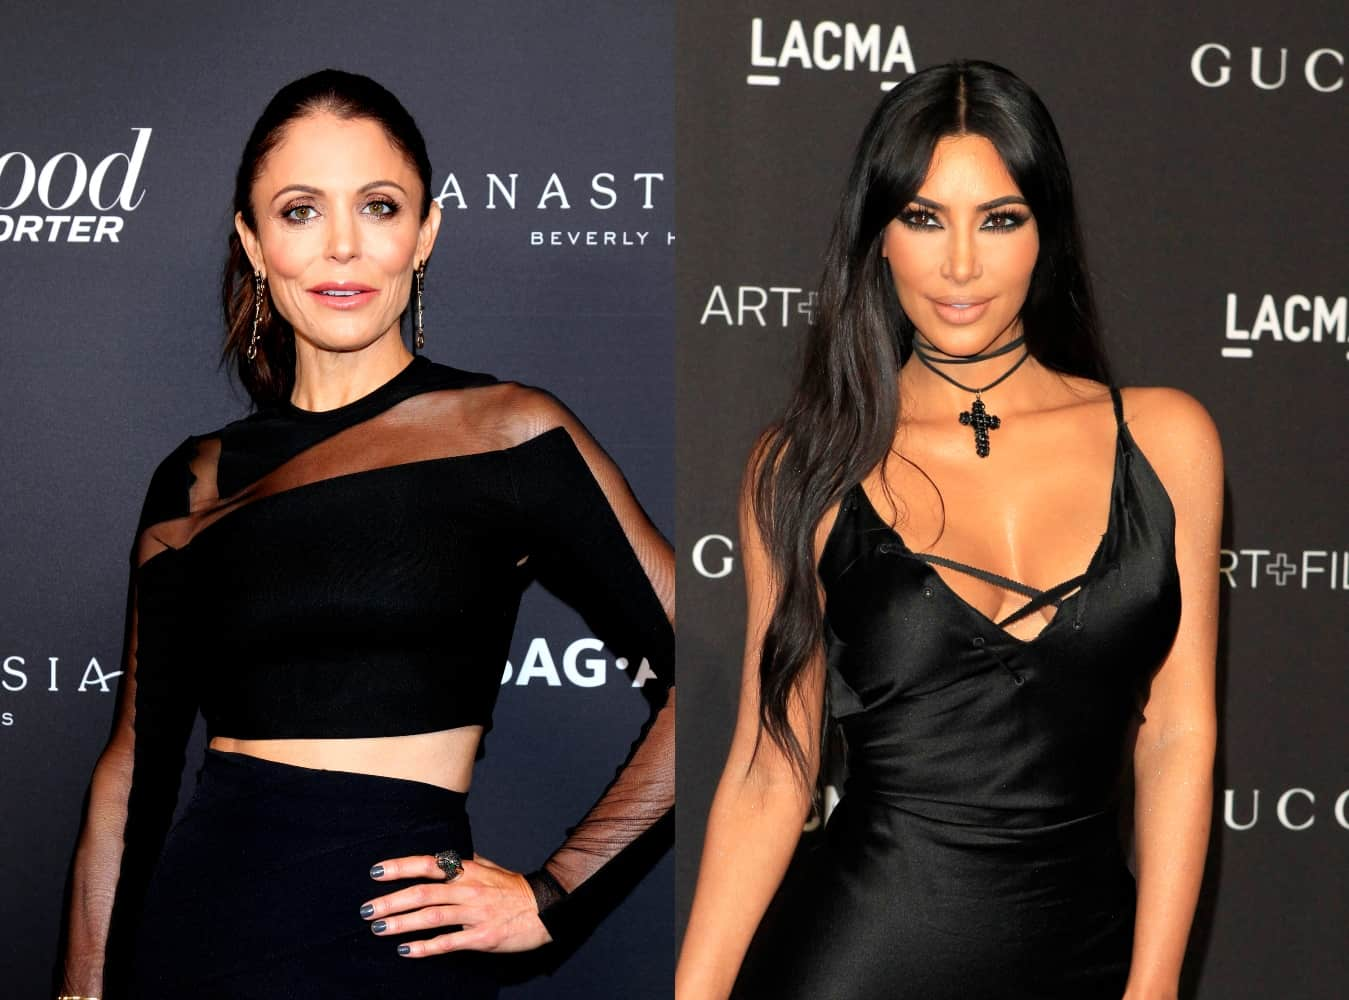 PHOTOS: Bethenny Frankel Mocks Kim Kardashian's Private Island Vacation as RHONY Alum Shares Photos of Herself and Daughter Bryn Enjoying a #Privileged Getaway